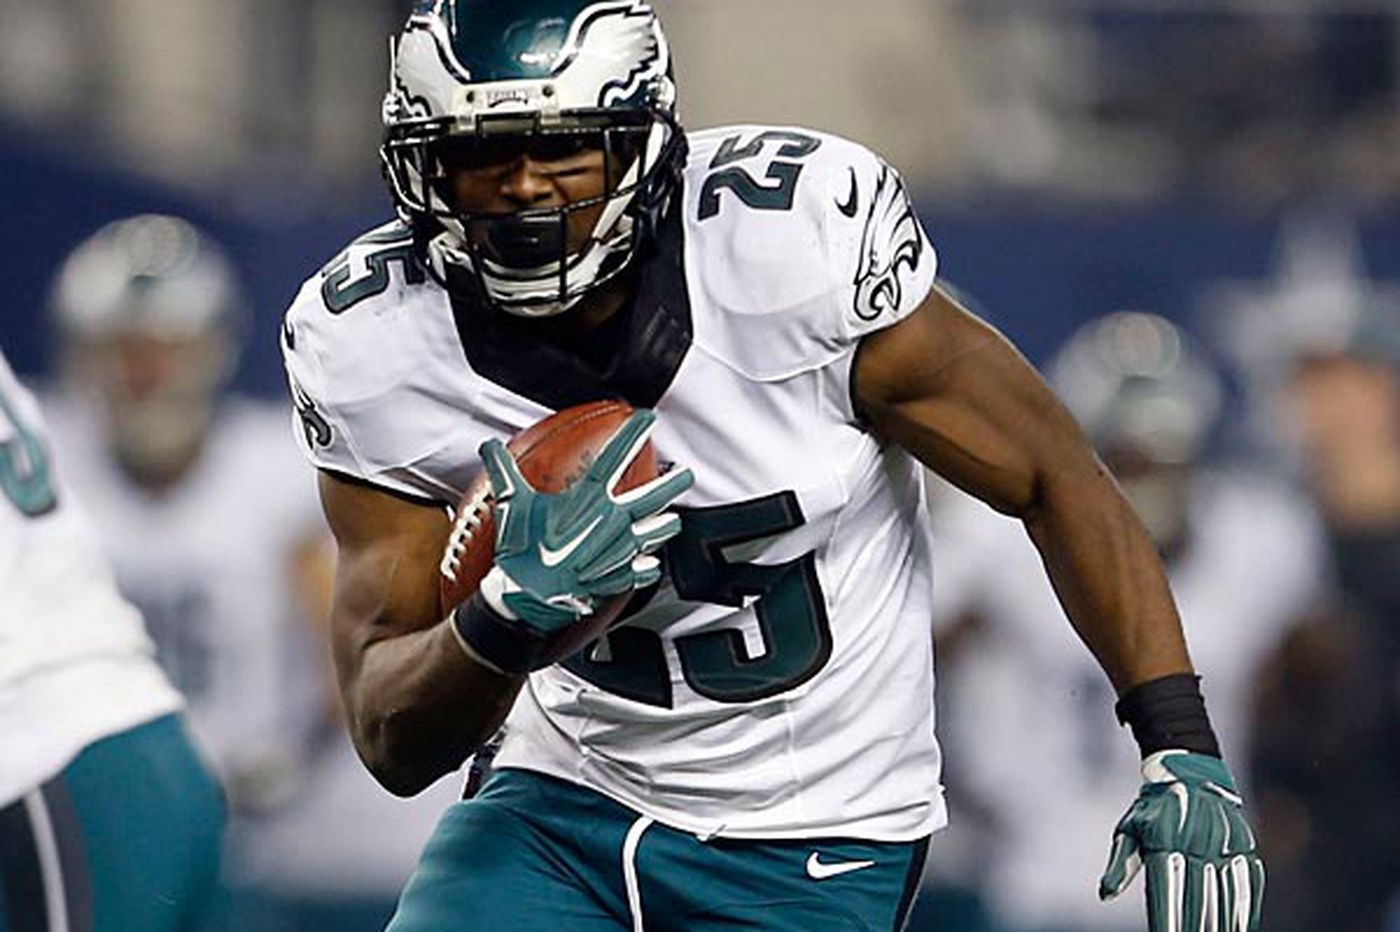 Eagles Notes: McCoy closing in on Montgomery's record